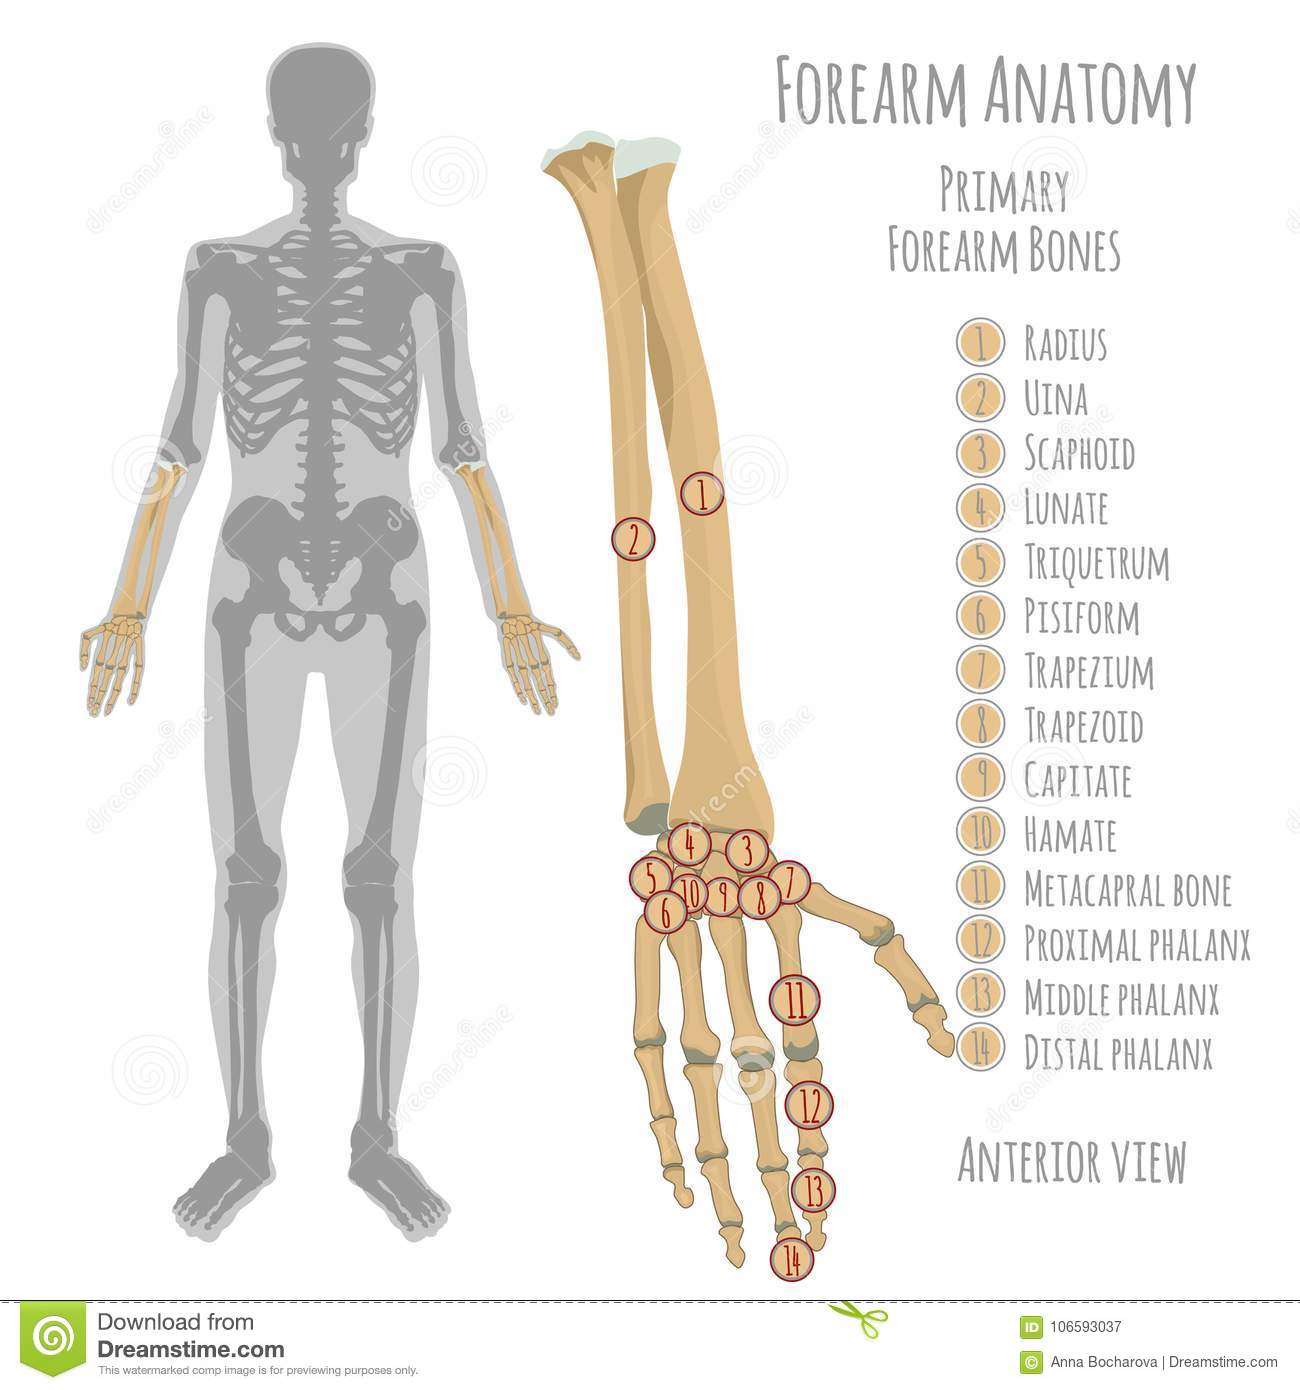 Male Forearm Bones Anatomy Stock Vector Illustration Of Fibula